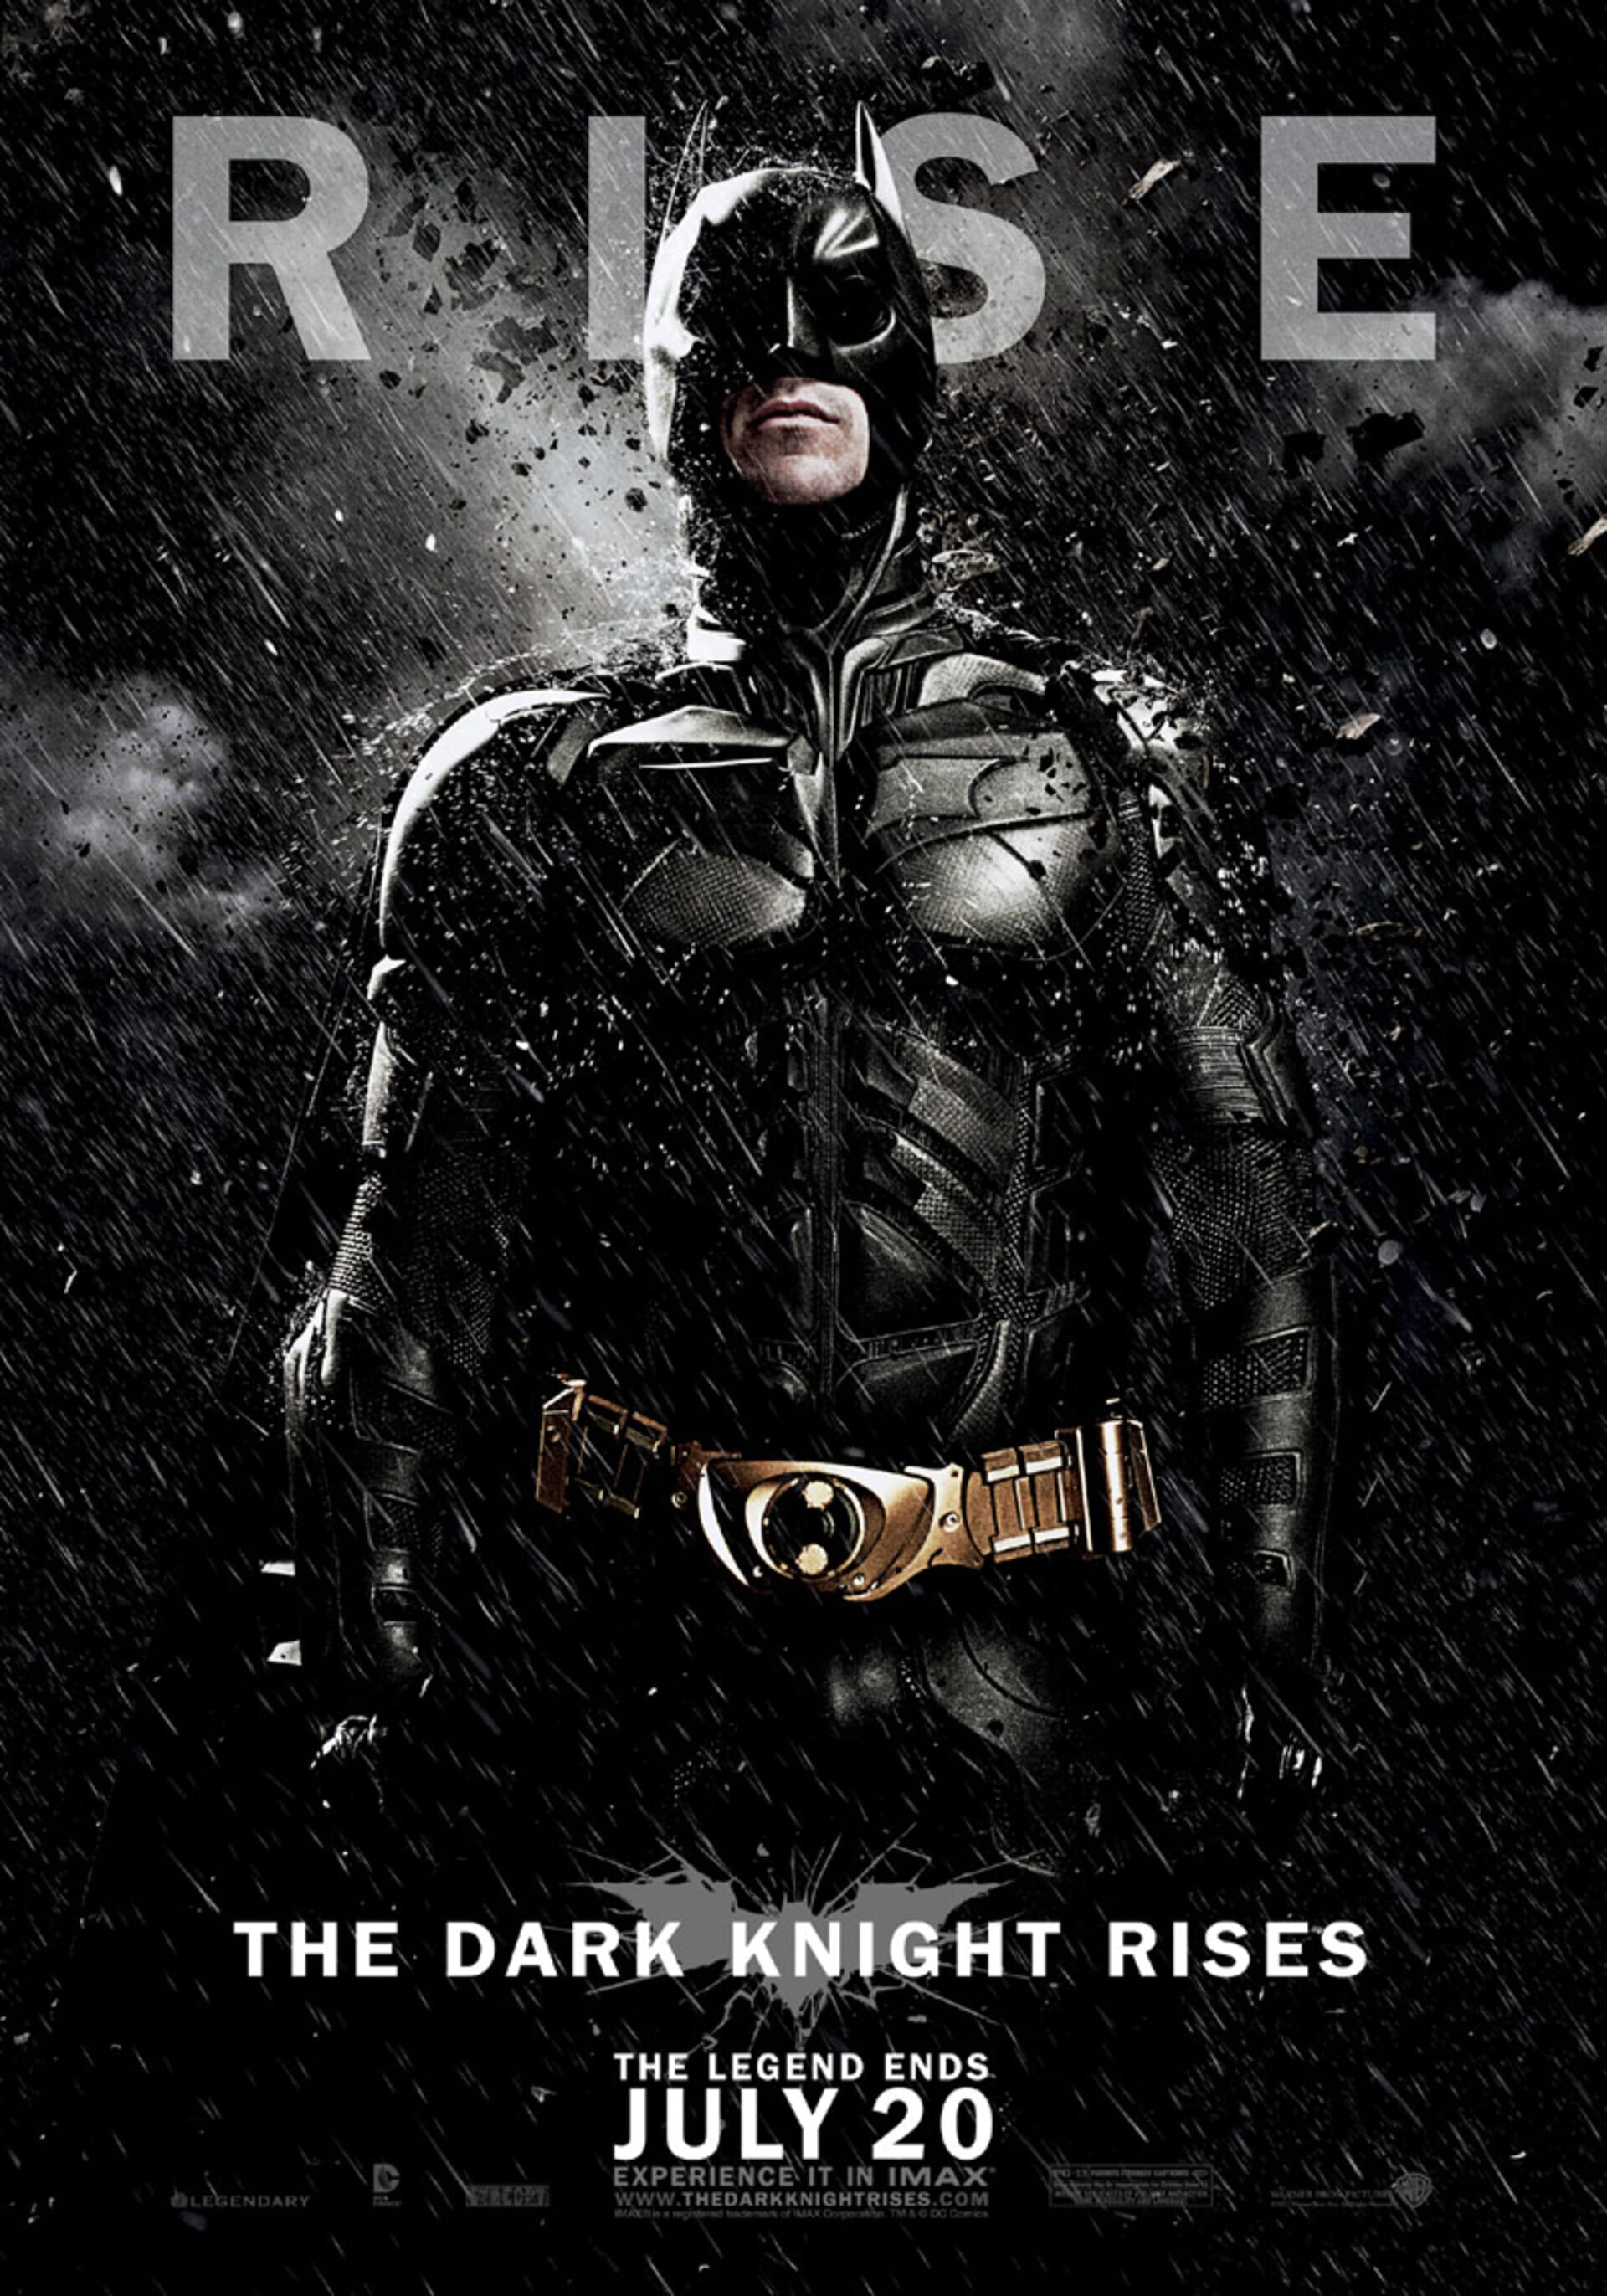 The Dark Knight Rises - Poster 4